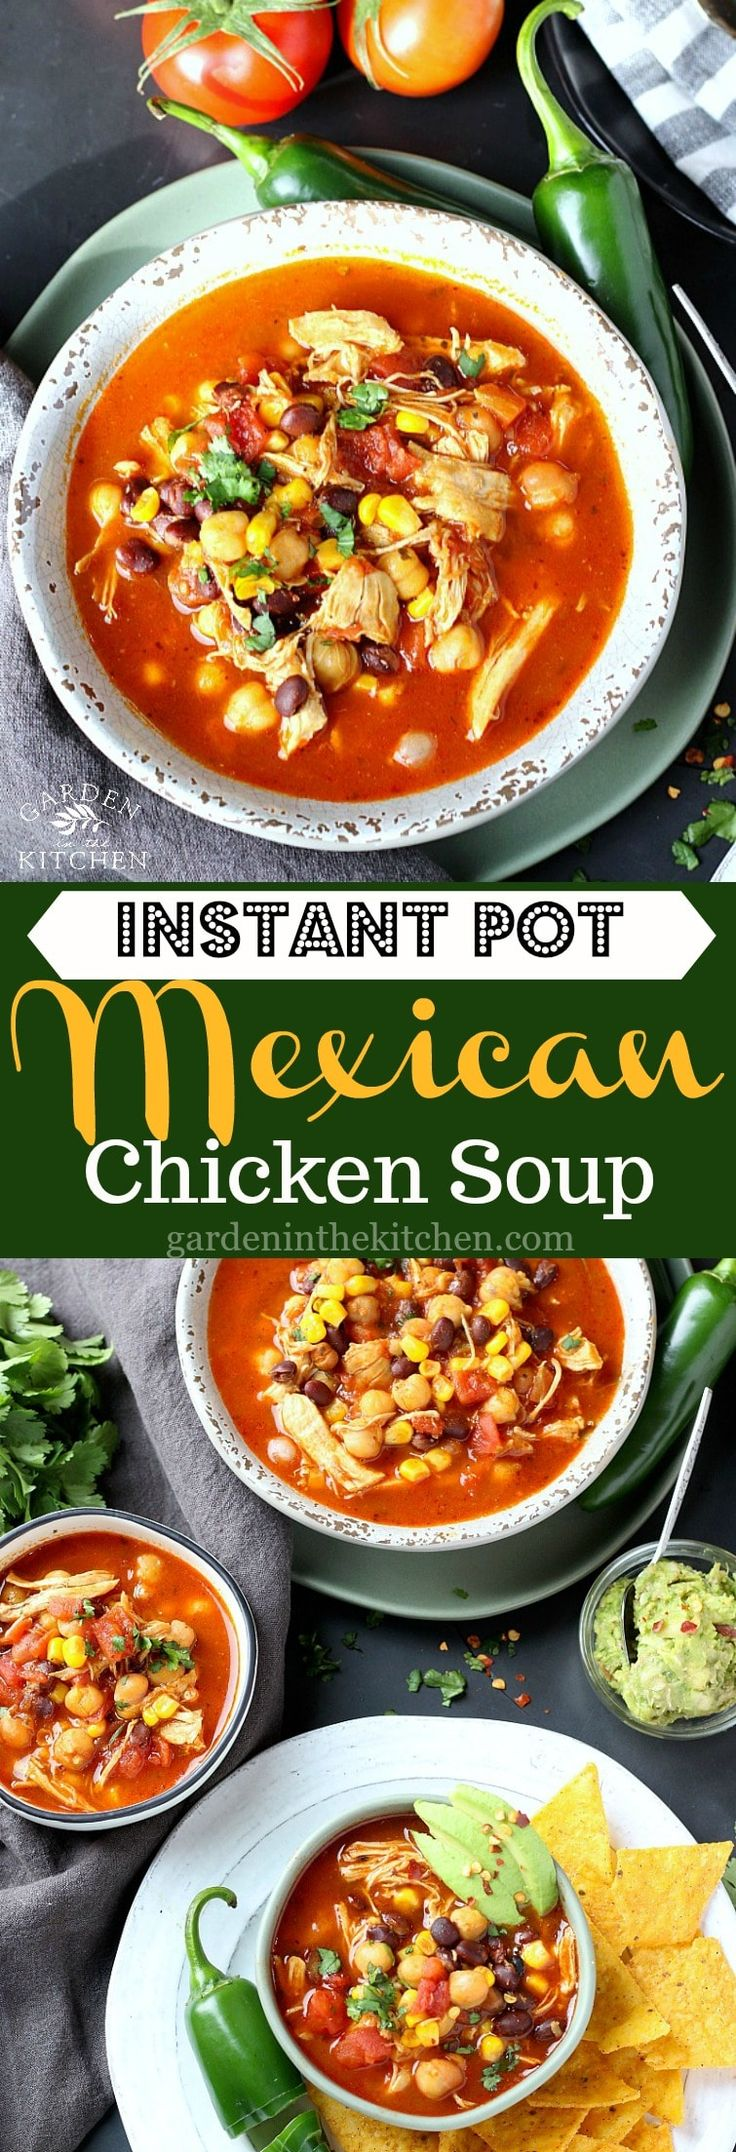 Instant Pot Mexican Chicken Soup, perfect for Cinco de Mayo!